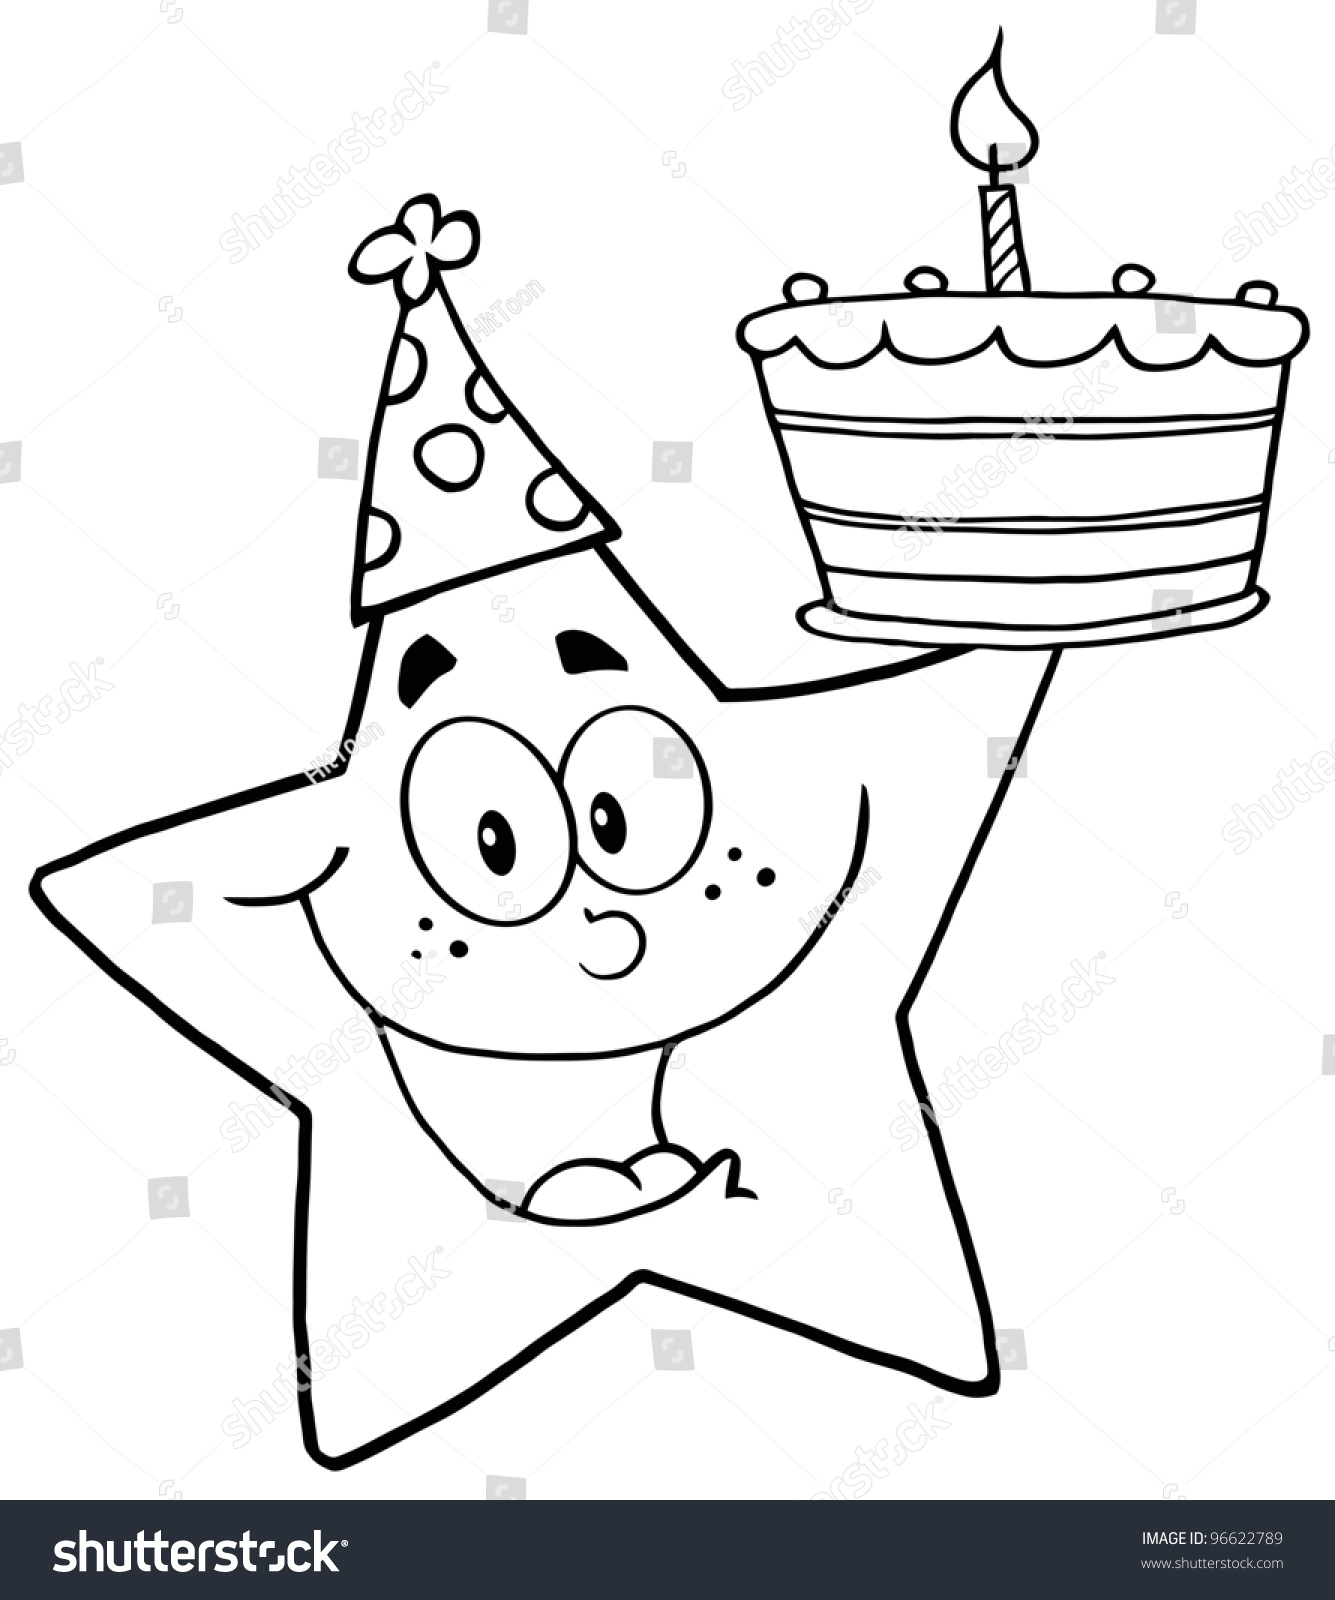 Outline Happy Star Holding Birthday Cake Stock Vector Royalty Free